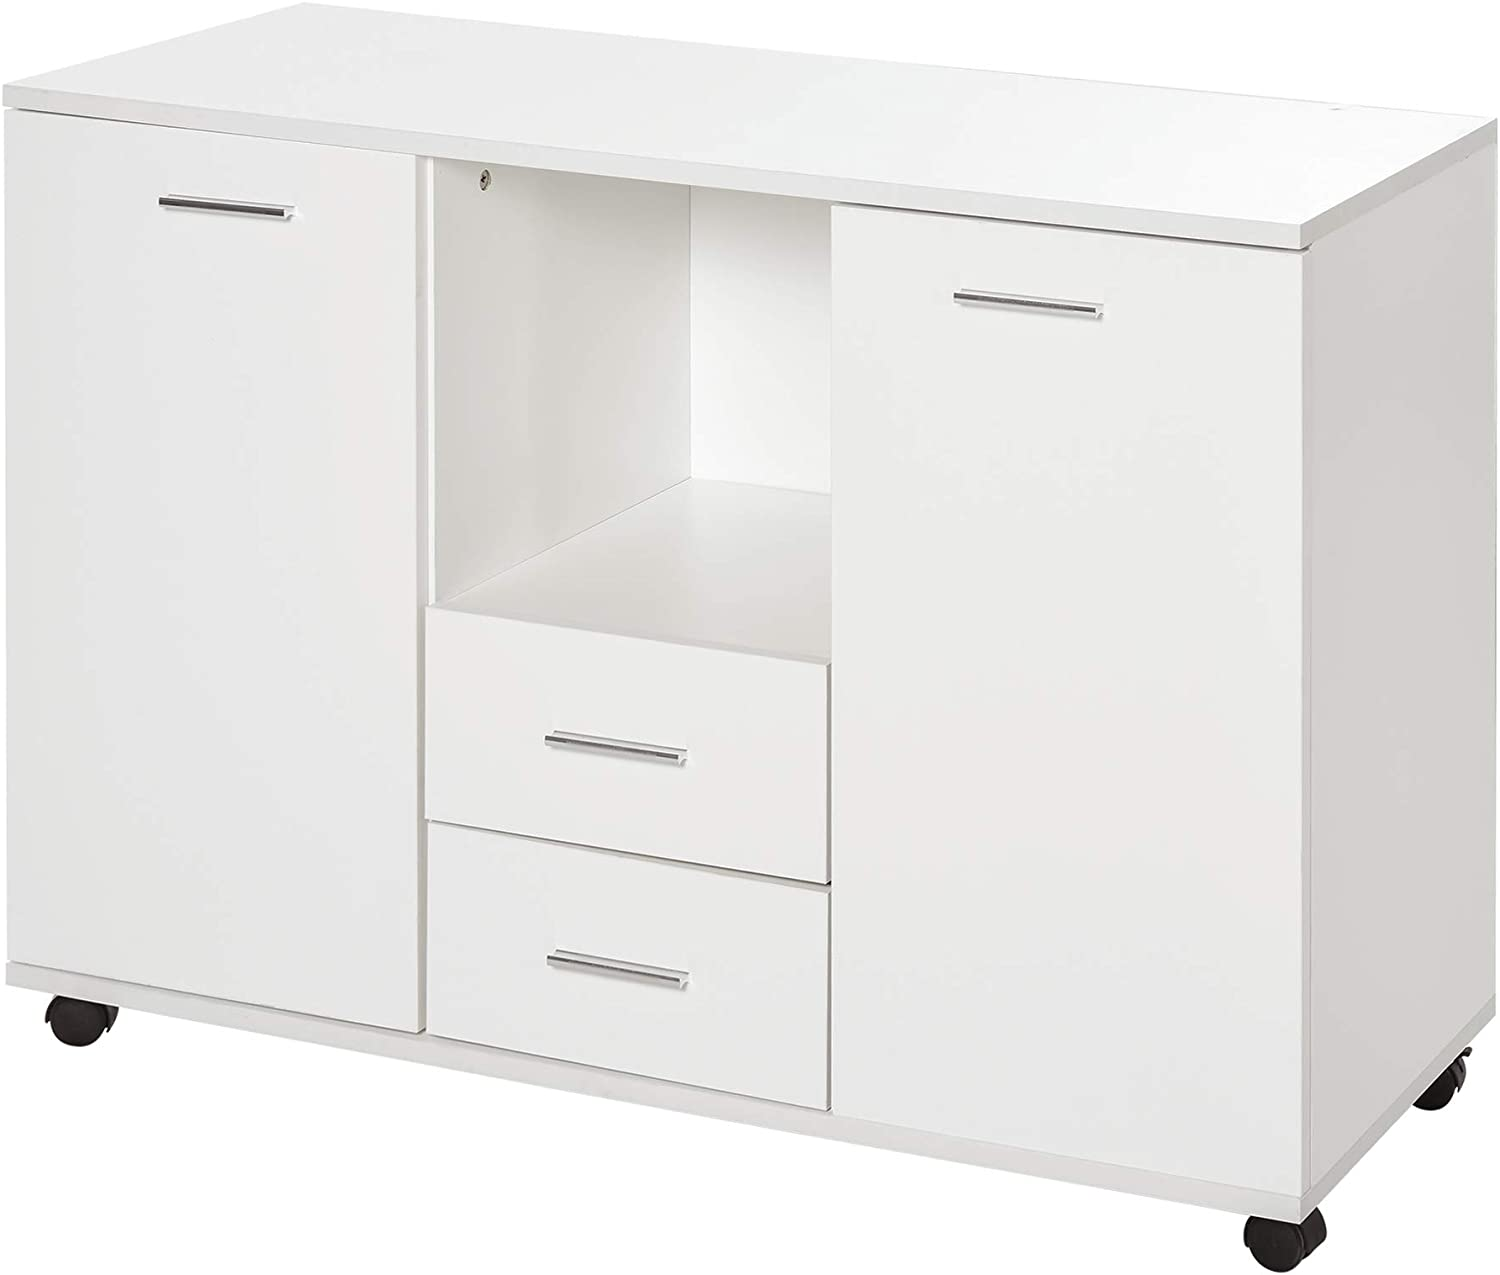 Vinsetto Multifunction Office Filing Cabinet Printer Stand with 2 Drawers, 2 Shelves, Smooth Counter Surface, White